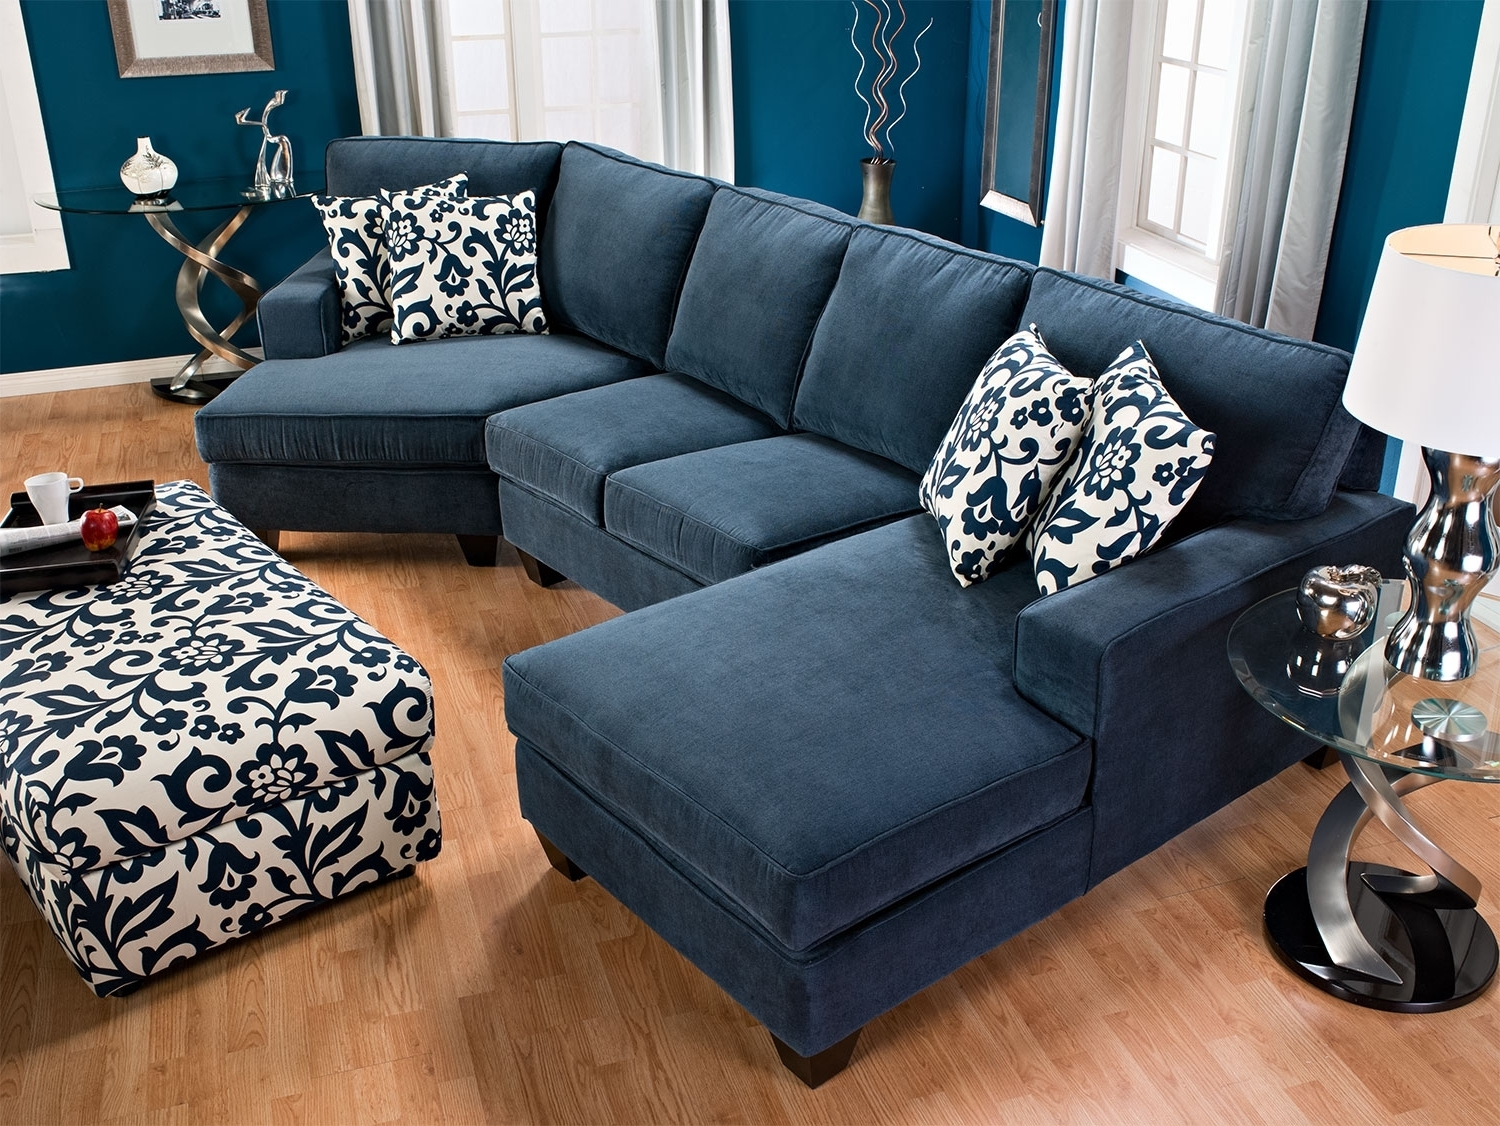 The Brick Sectional Sofas For Most Up To Date Chenille Sectional Sofa With Chaise (View 8 of 15)